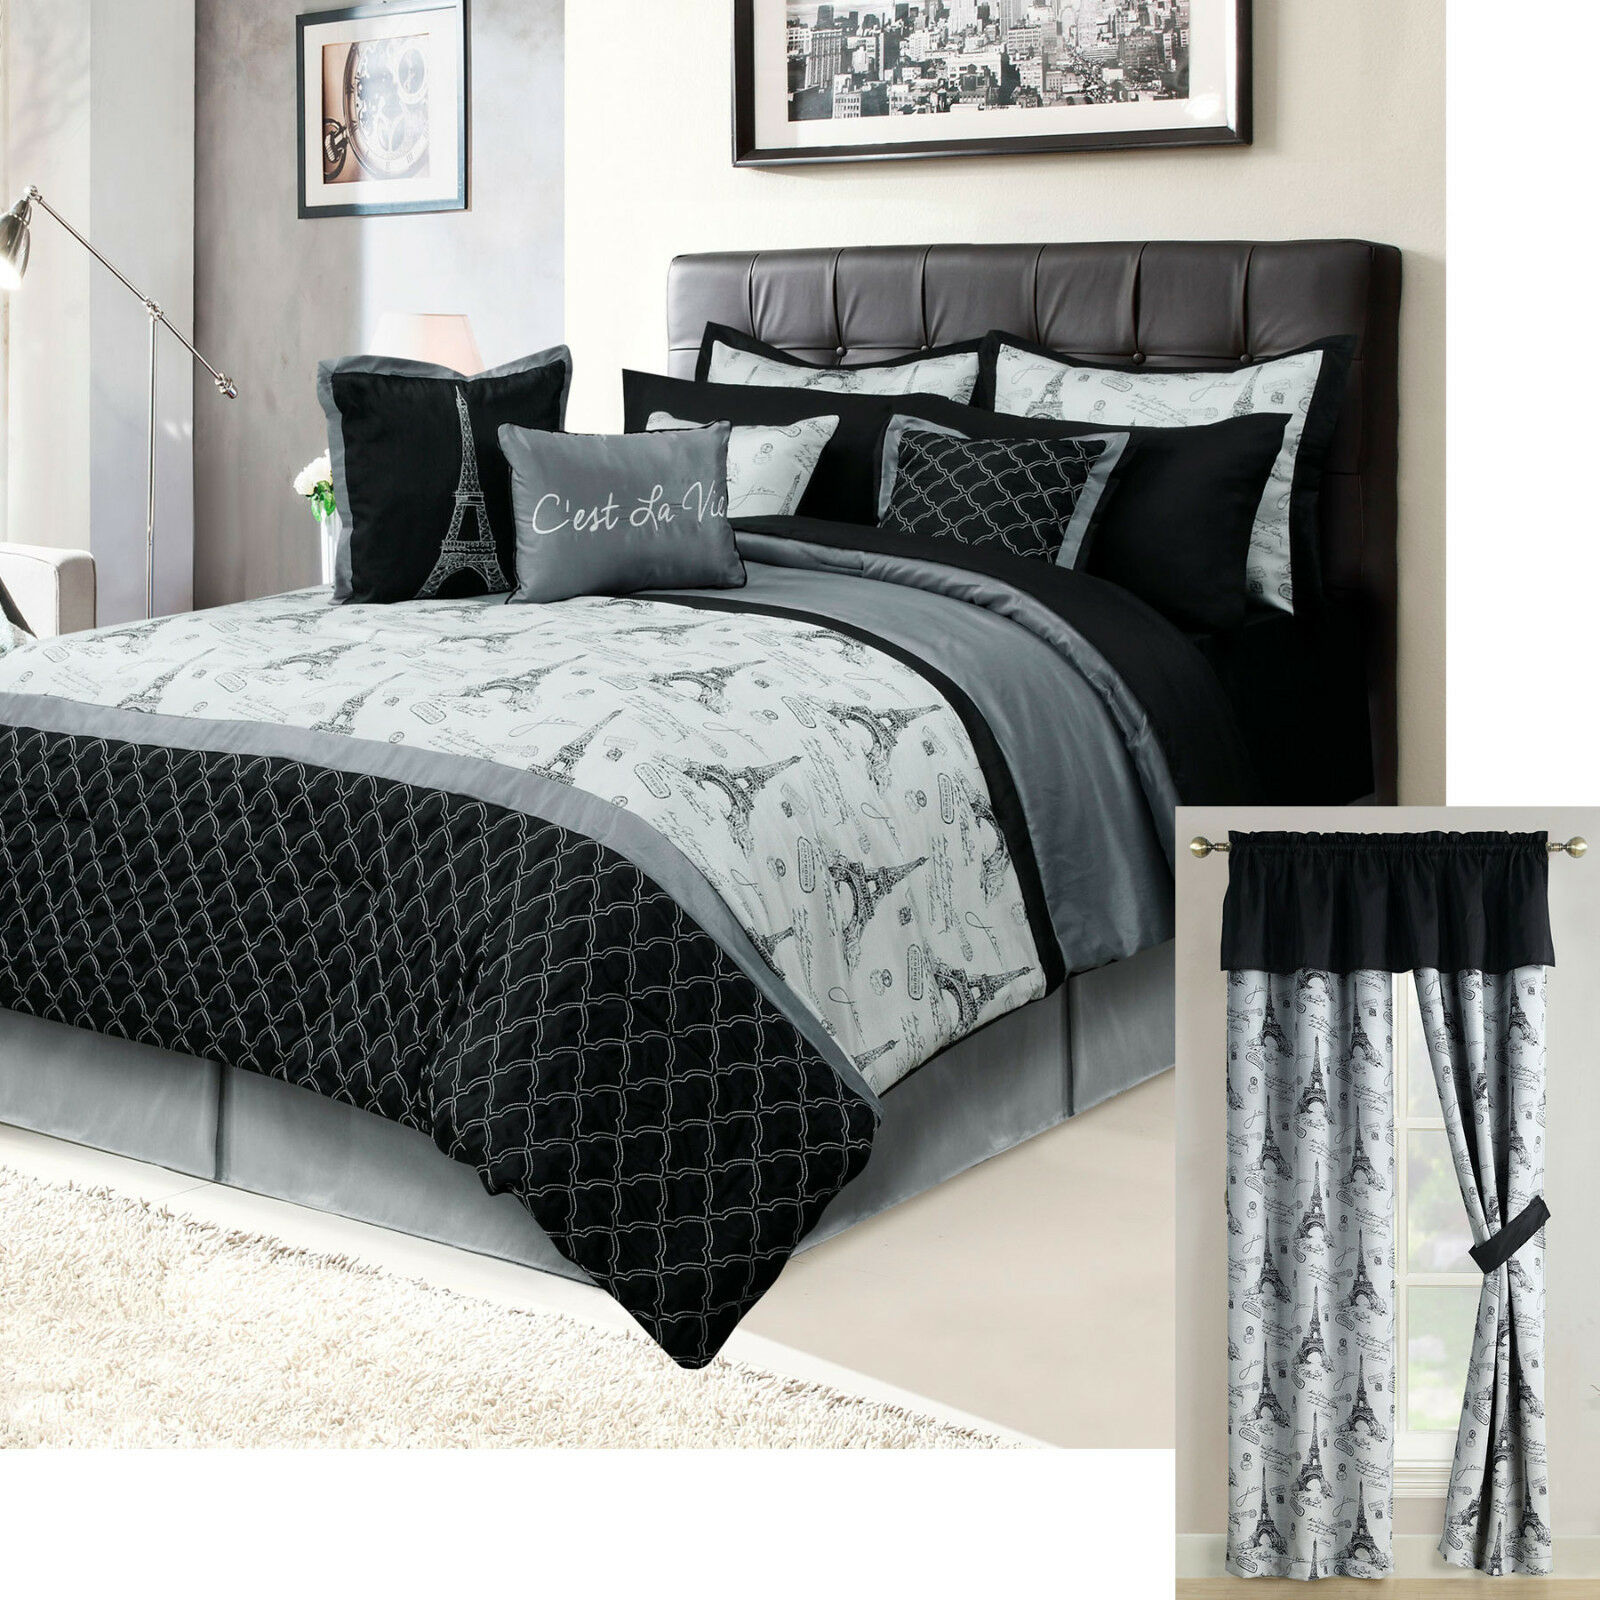 Paris Queen or King Bedding Bed in a Bag 12 Piece Set Eiffel Tower Black, Gray Bed-in-a-Bag